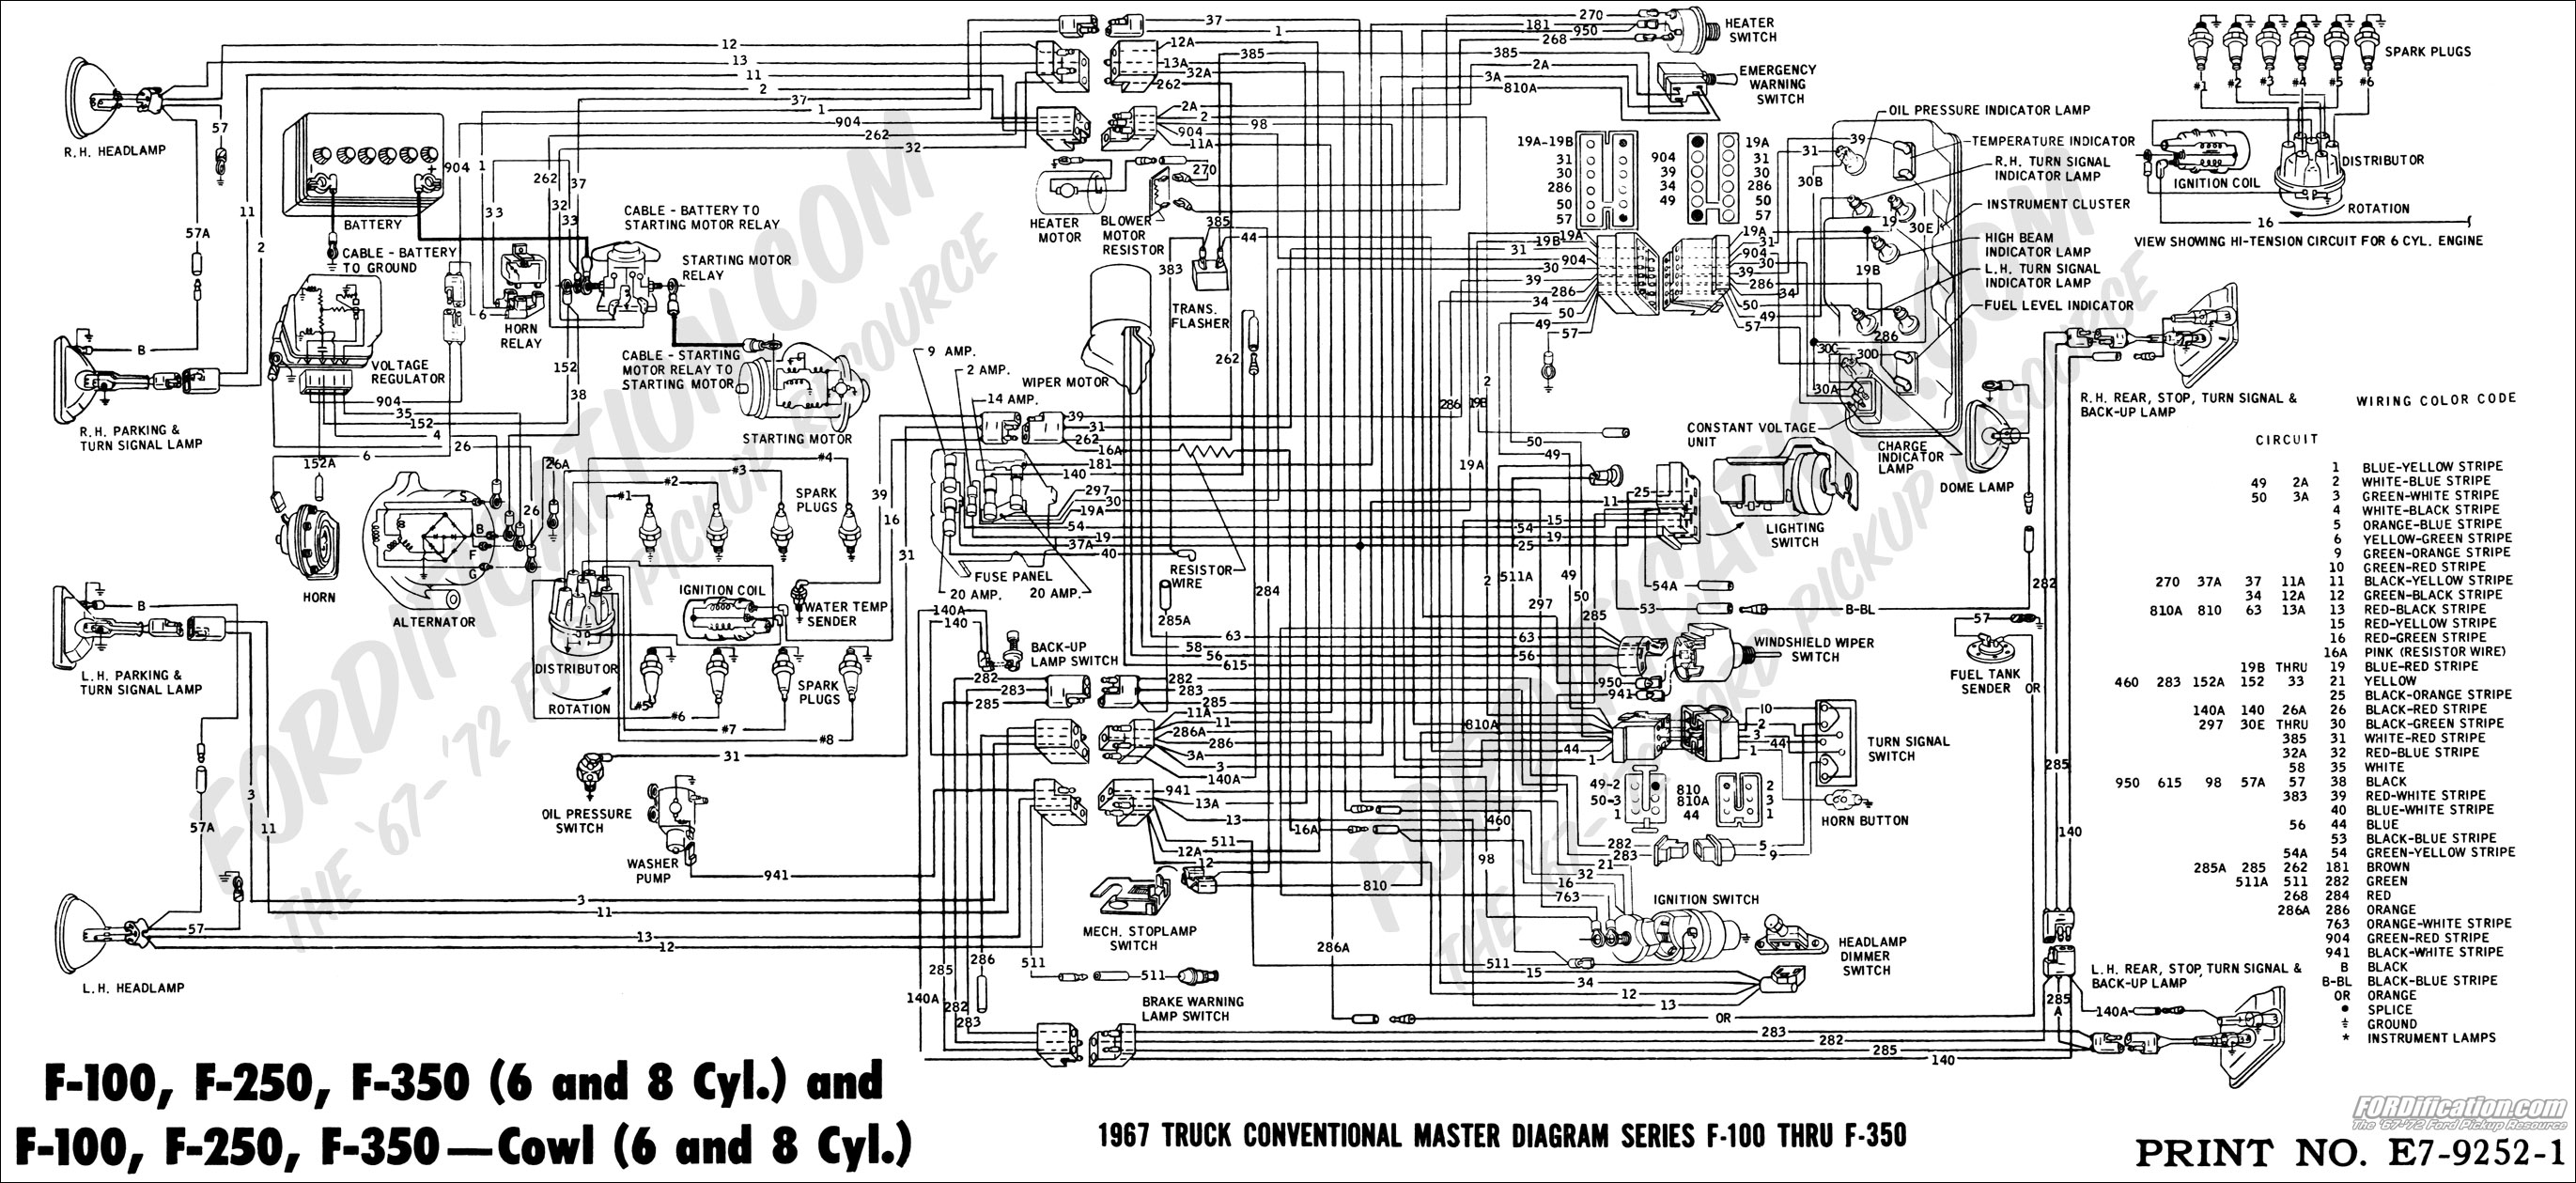 67masterdiagram ford truck technical drawings and schematics section h wiring ford truck radio wiring diagram at alyssarenee.co